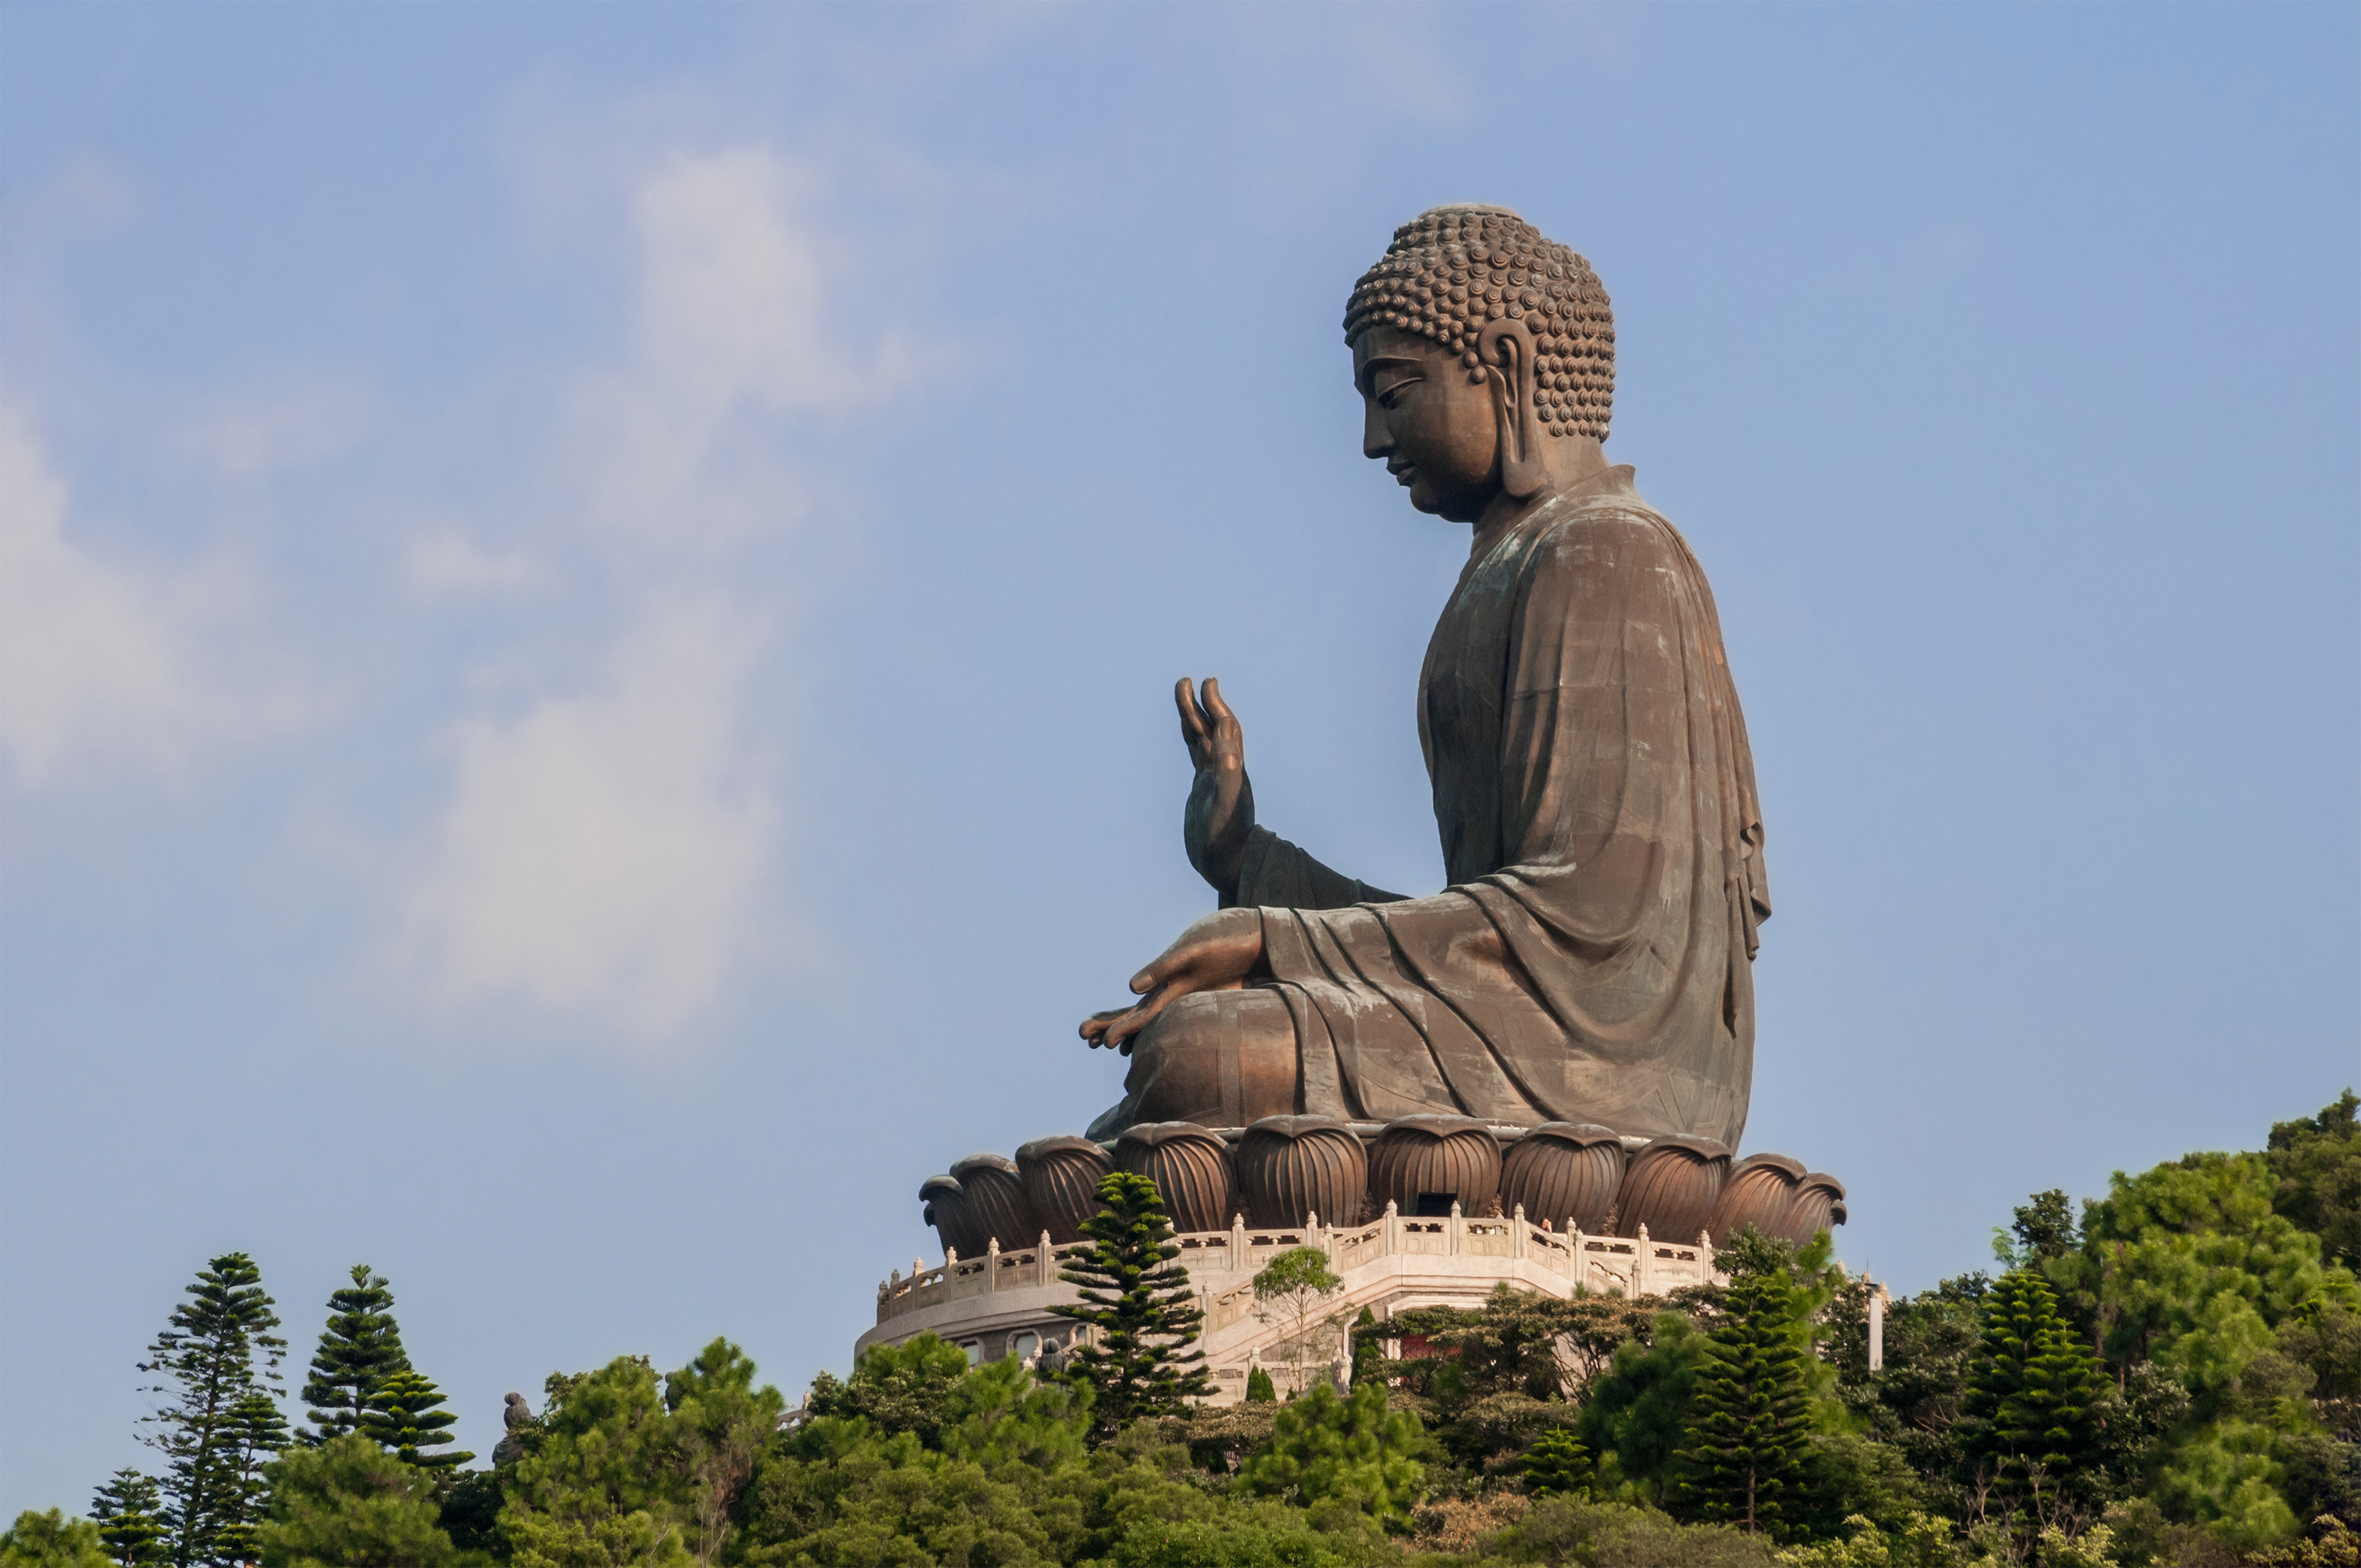 http://upload.wikimedia.org/wikipedia/commons/1/13/Tian_Tan_Buddha_by_Beria.jpg